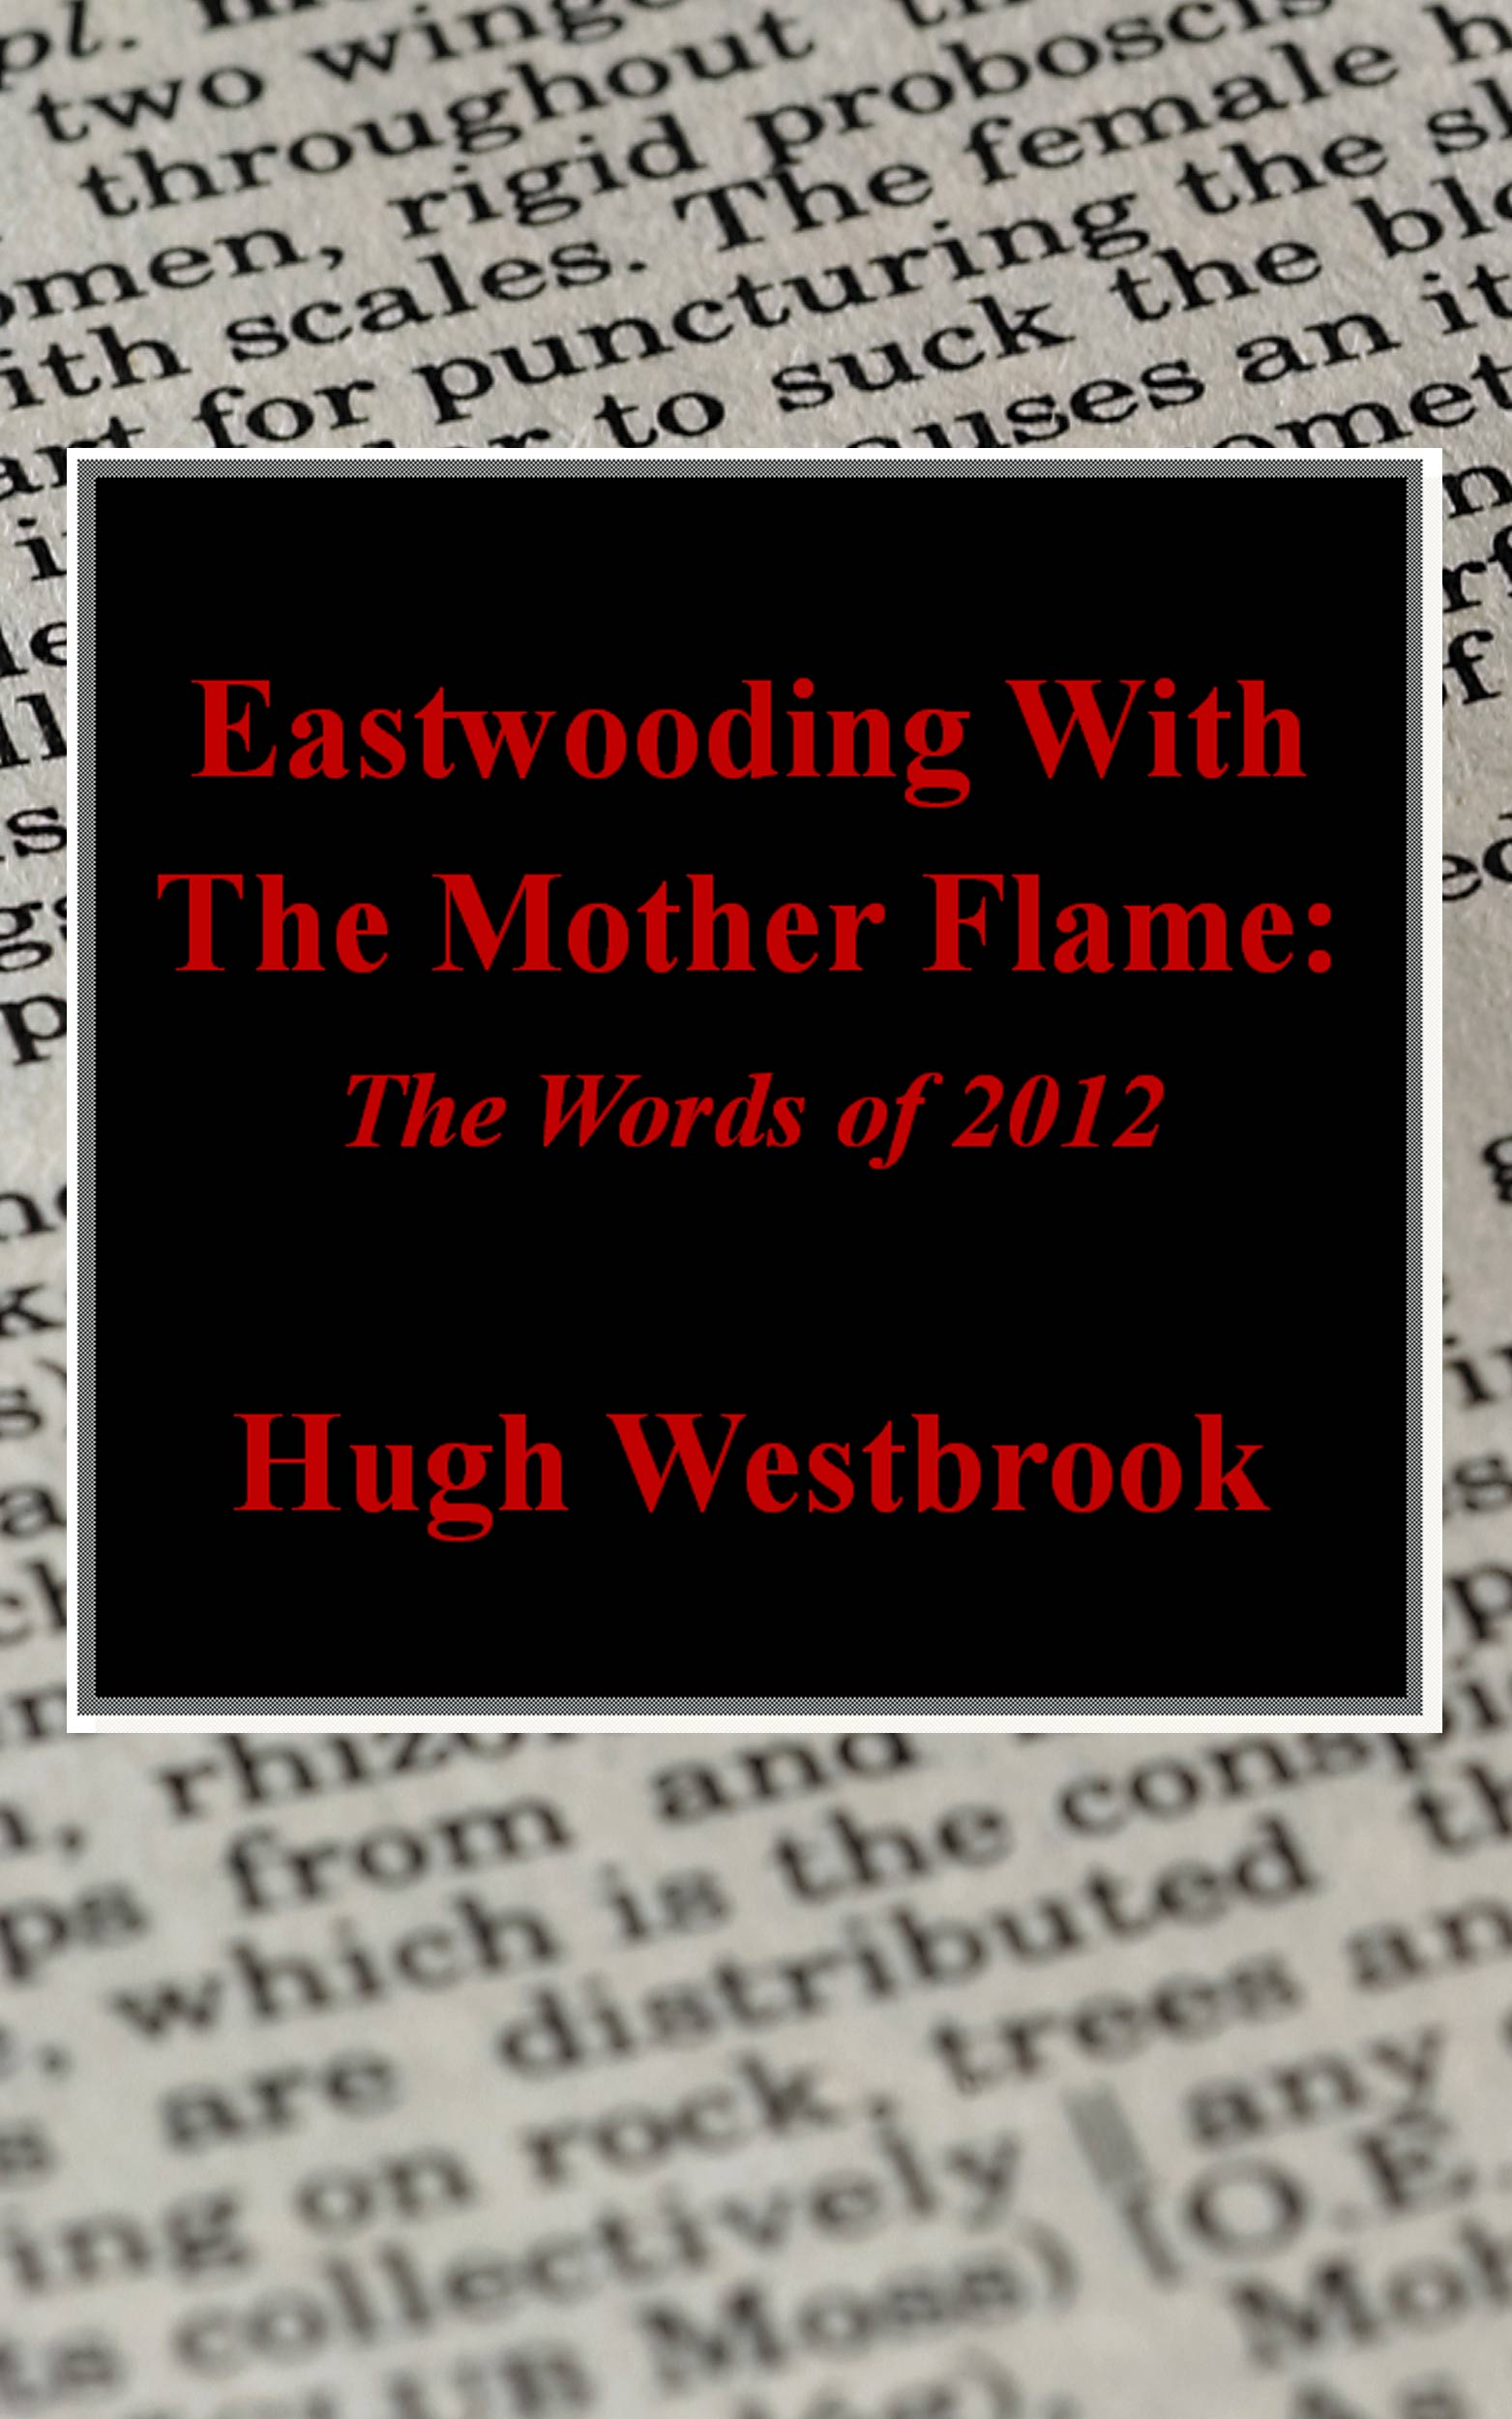 Eastwooding With The Mother Flame